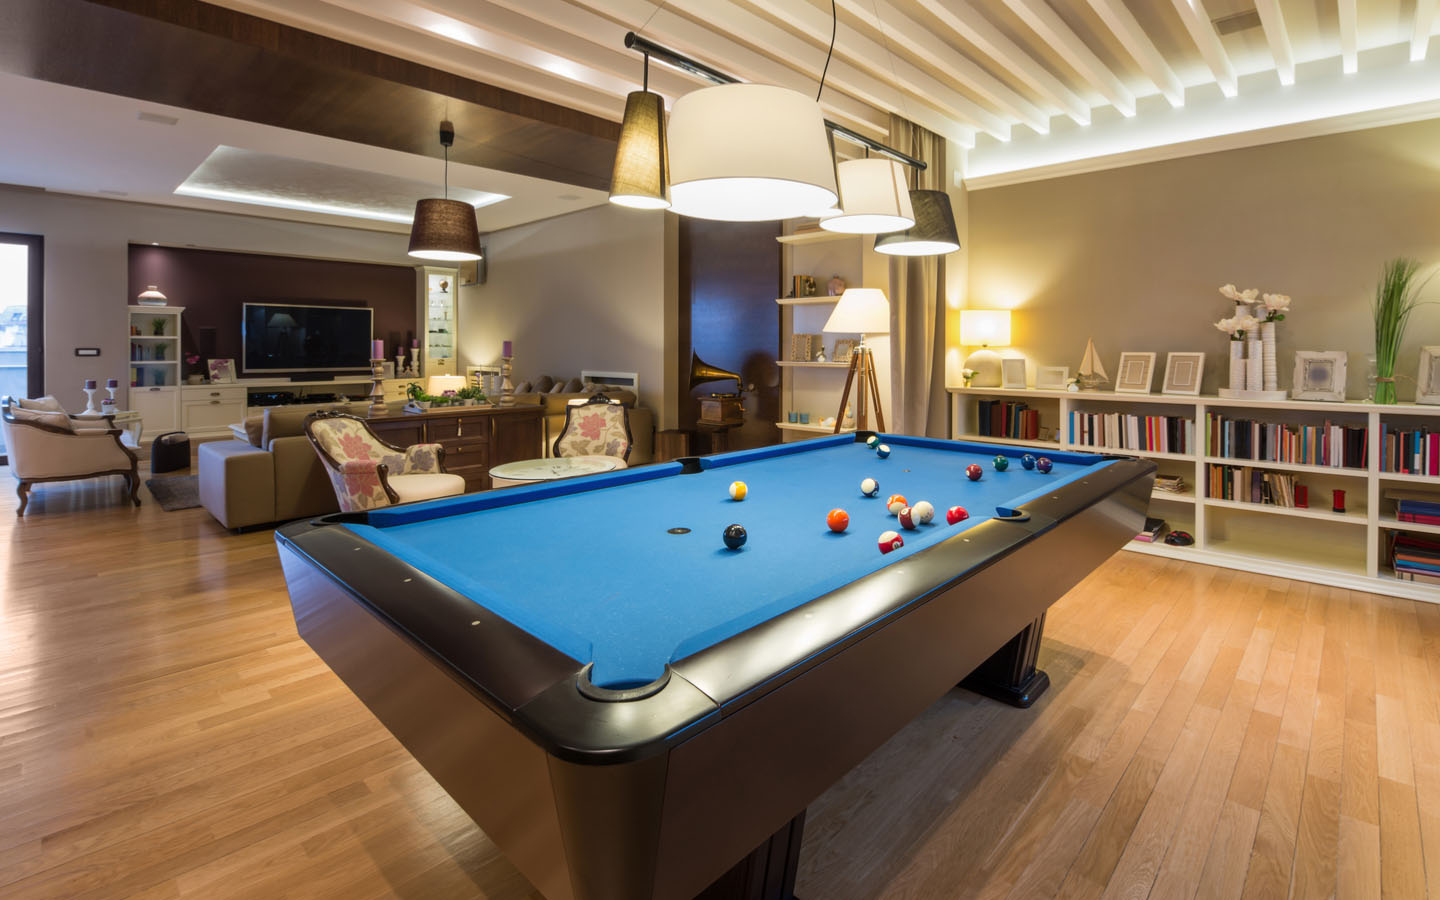 A pool table in your family room increases the fun